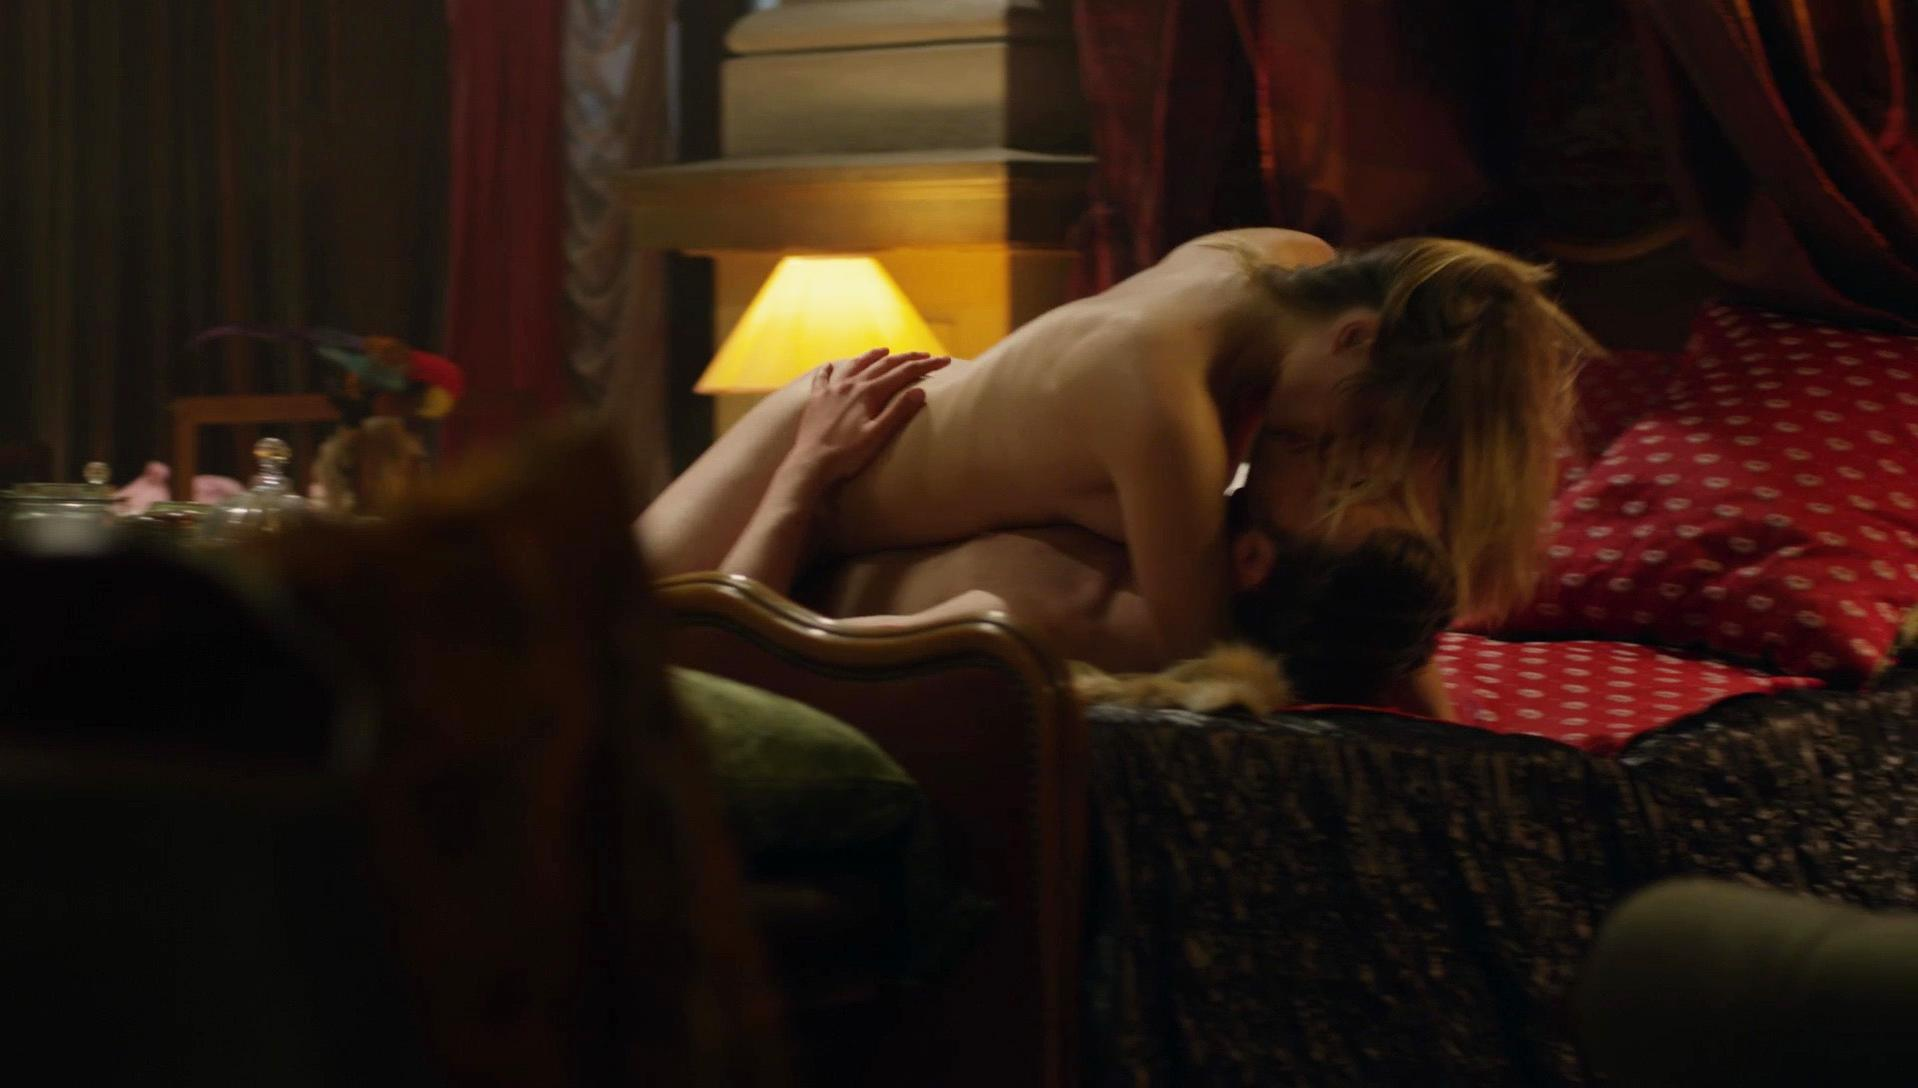 Aqueela Zoll nude - Wrong Turn 6 (2014)